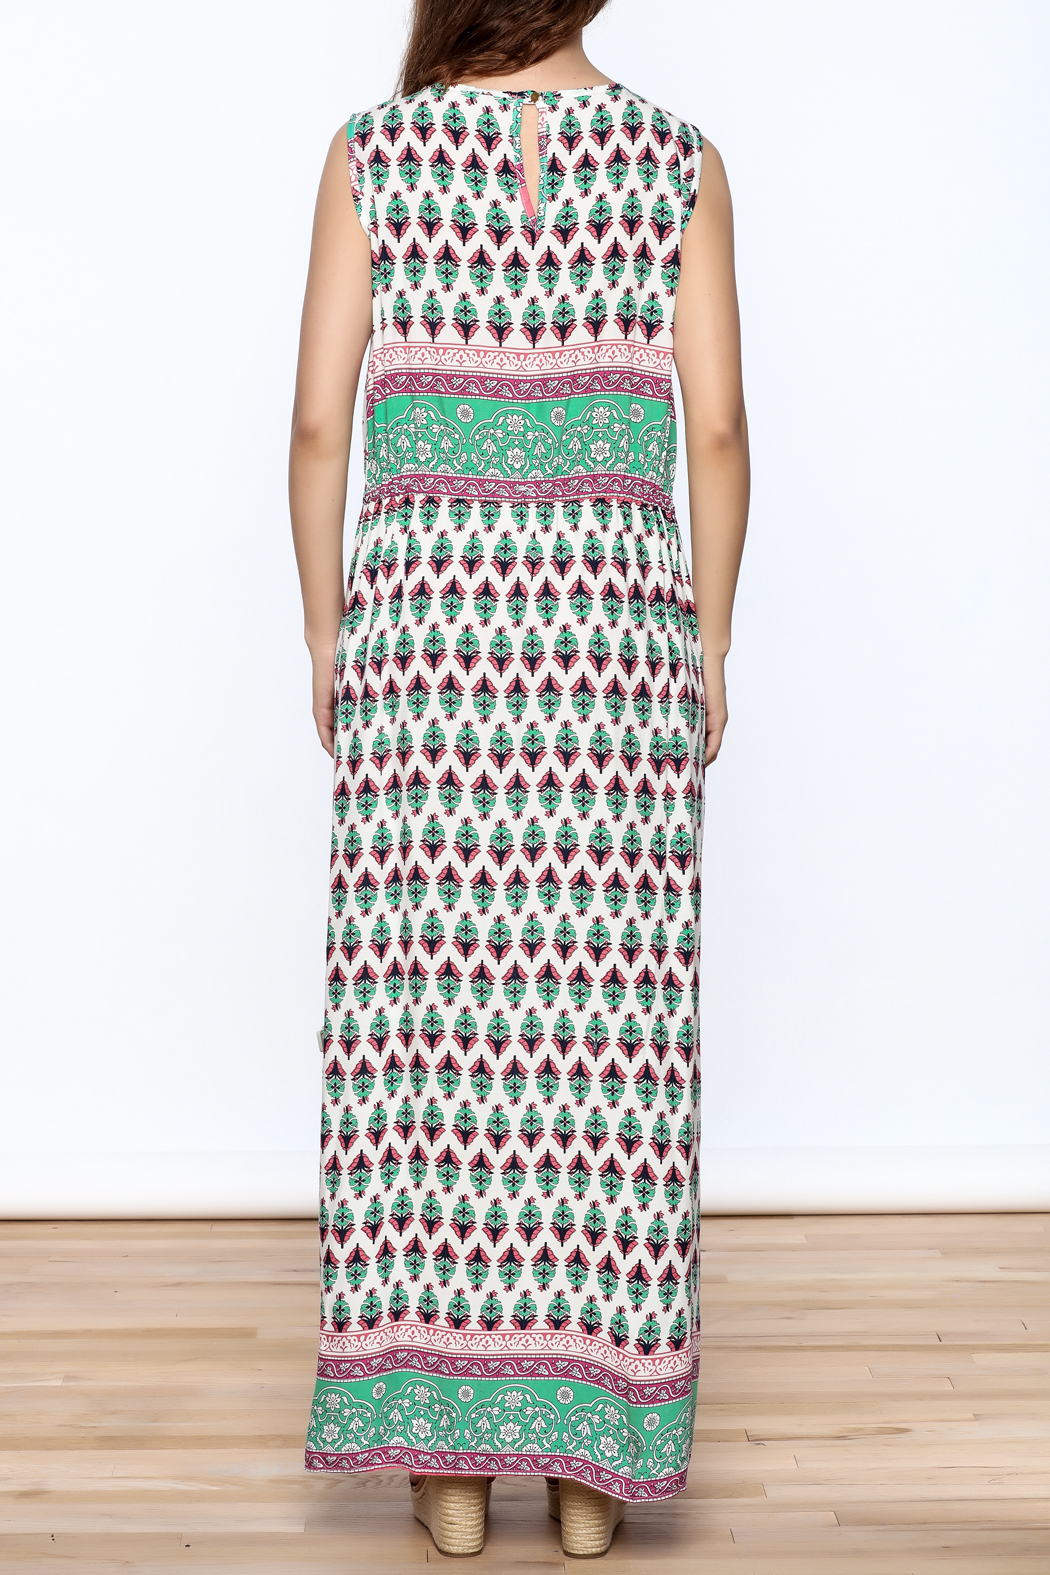 Joy & Co Printed Maxi Dress - Back Cropped Image